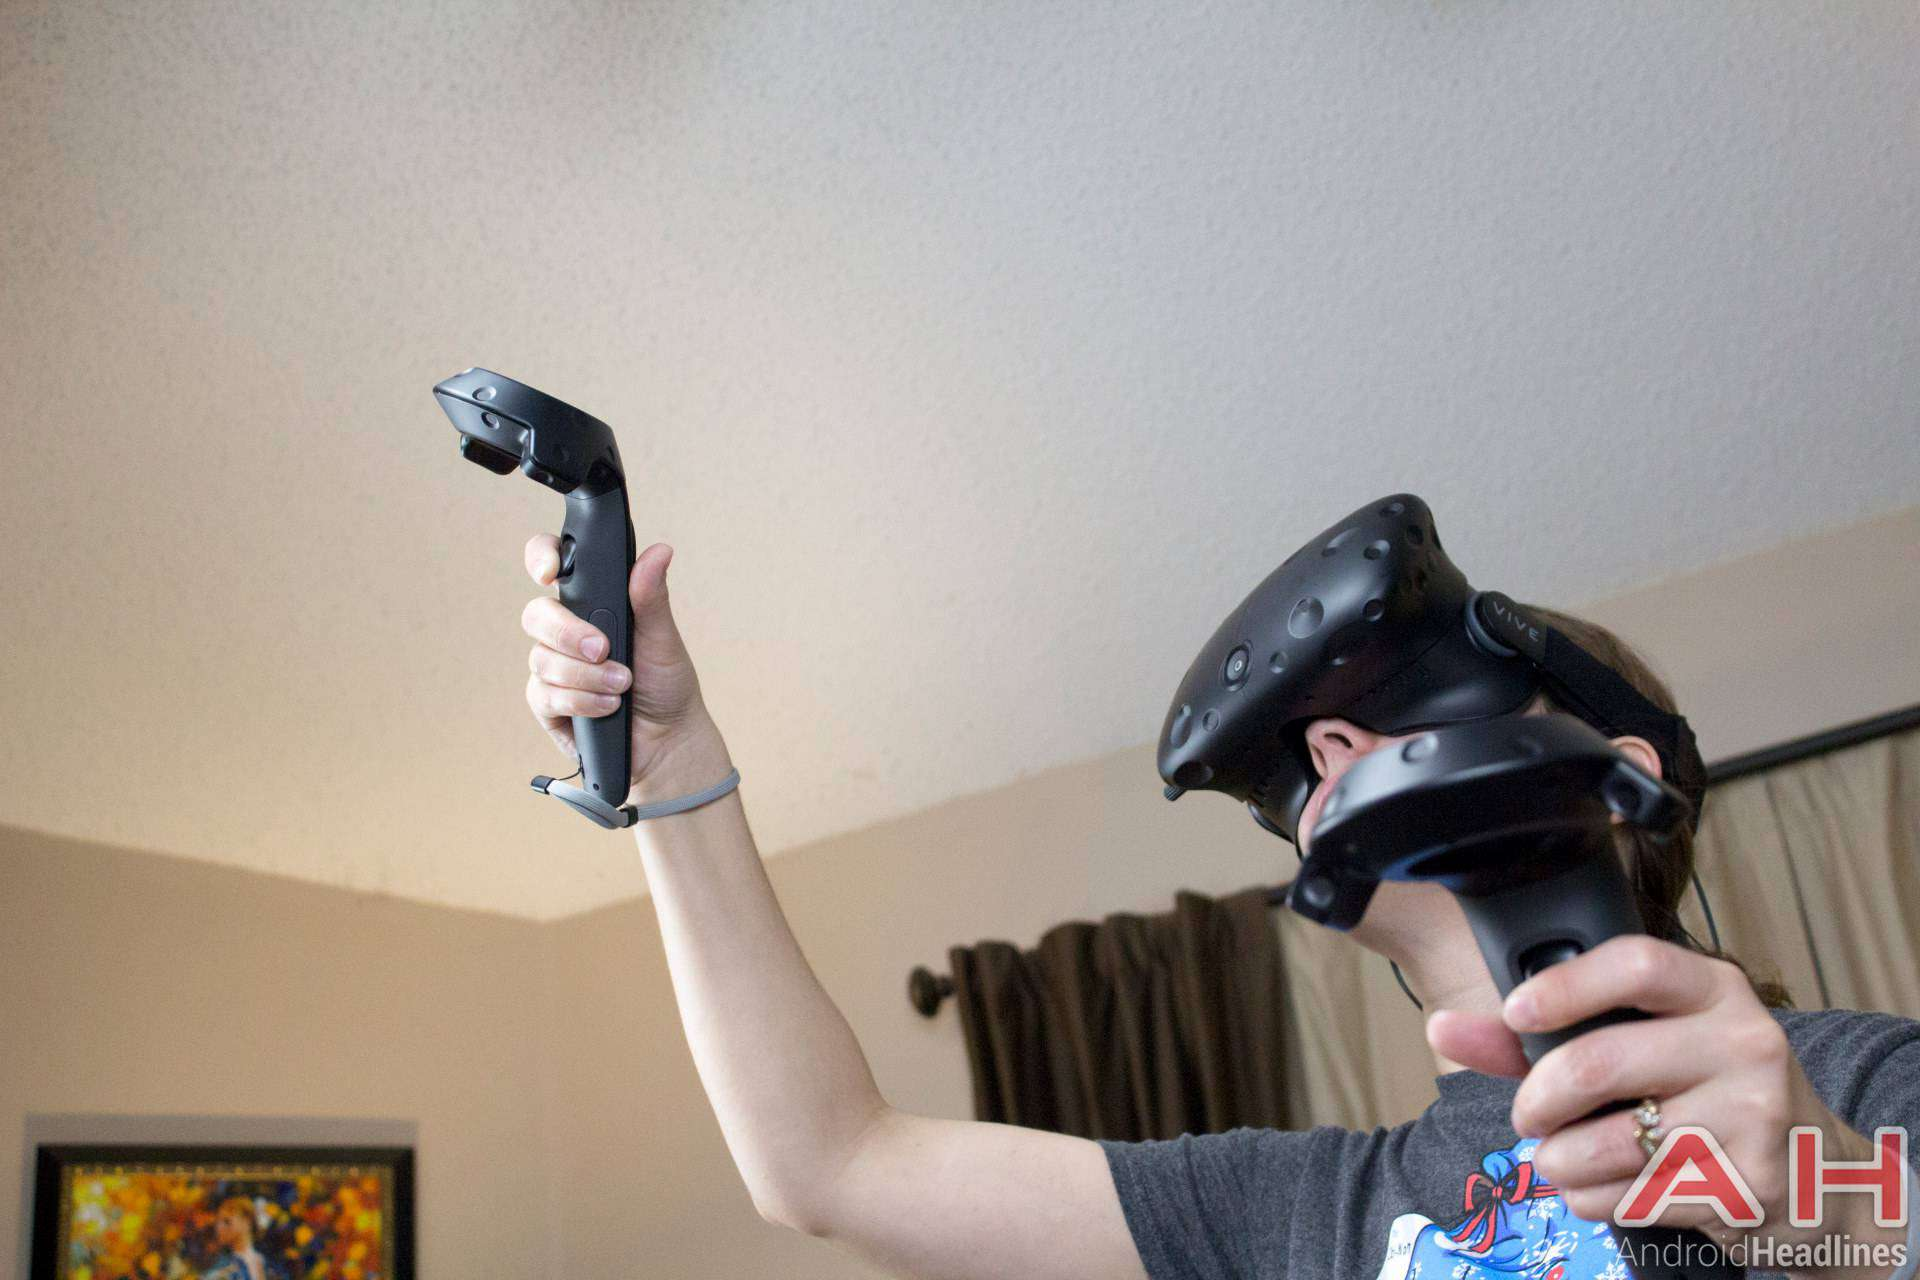 HTC-Vive-AH-NS-pose-6